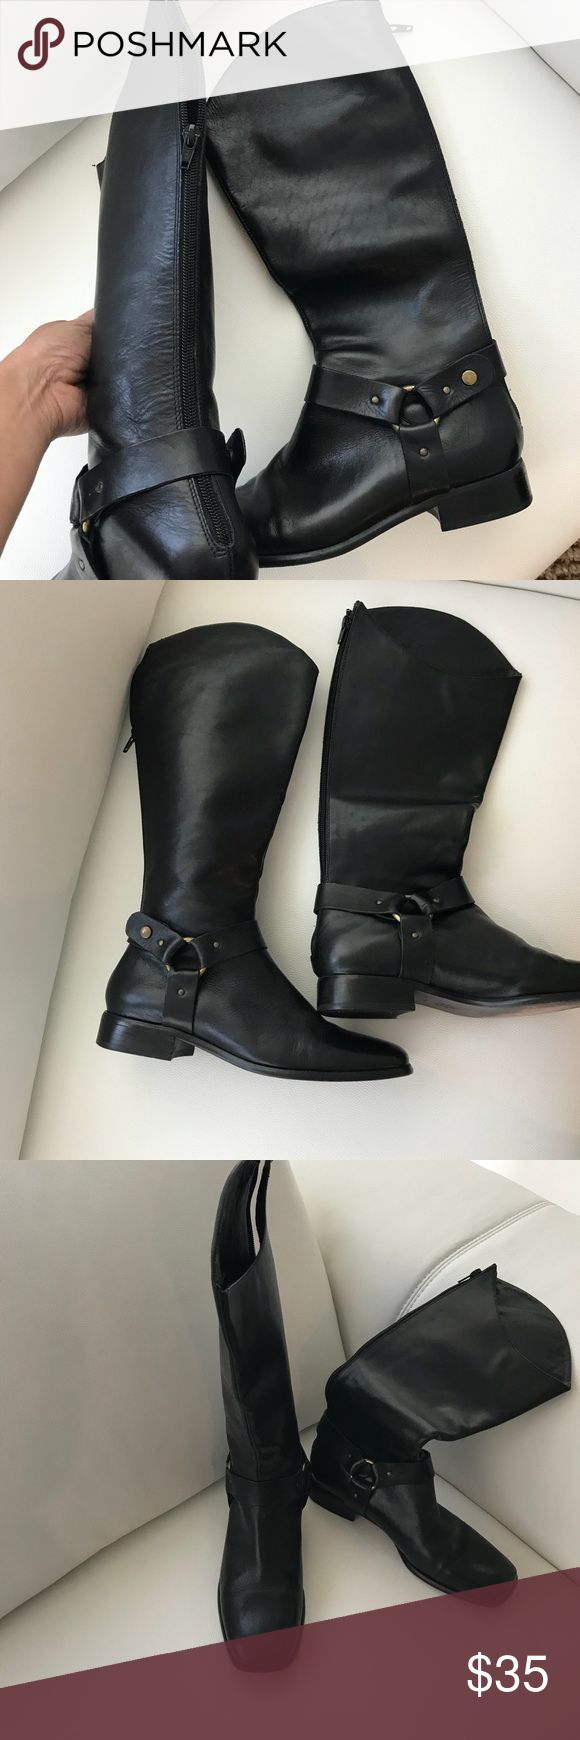 Charles David Black Boots size 7b Charles David Black Boots with zippered back and ankle accents size 7b Charles David Shoes